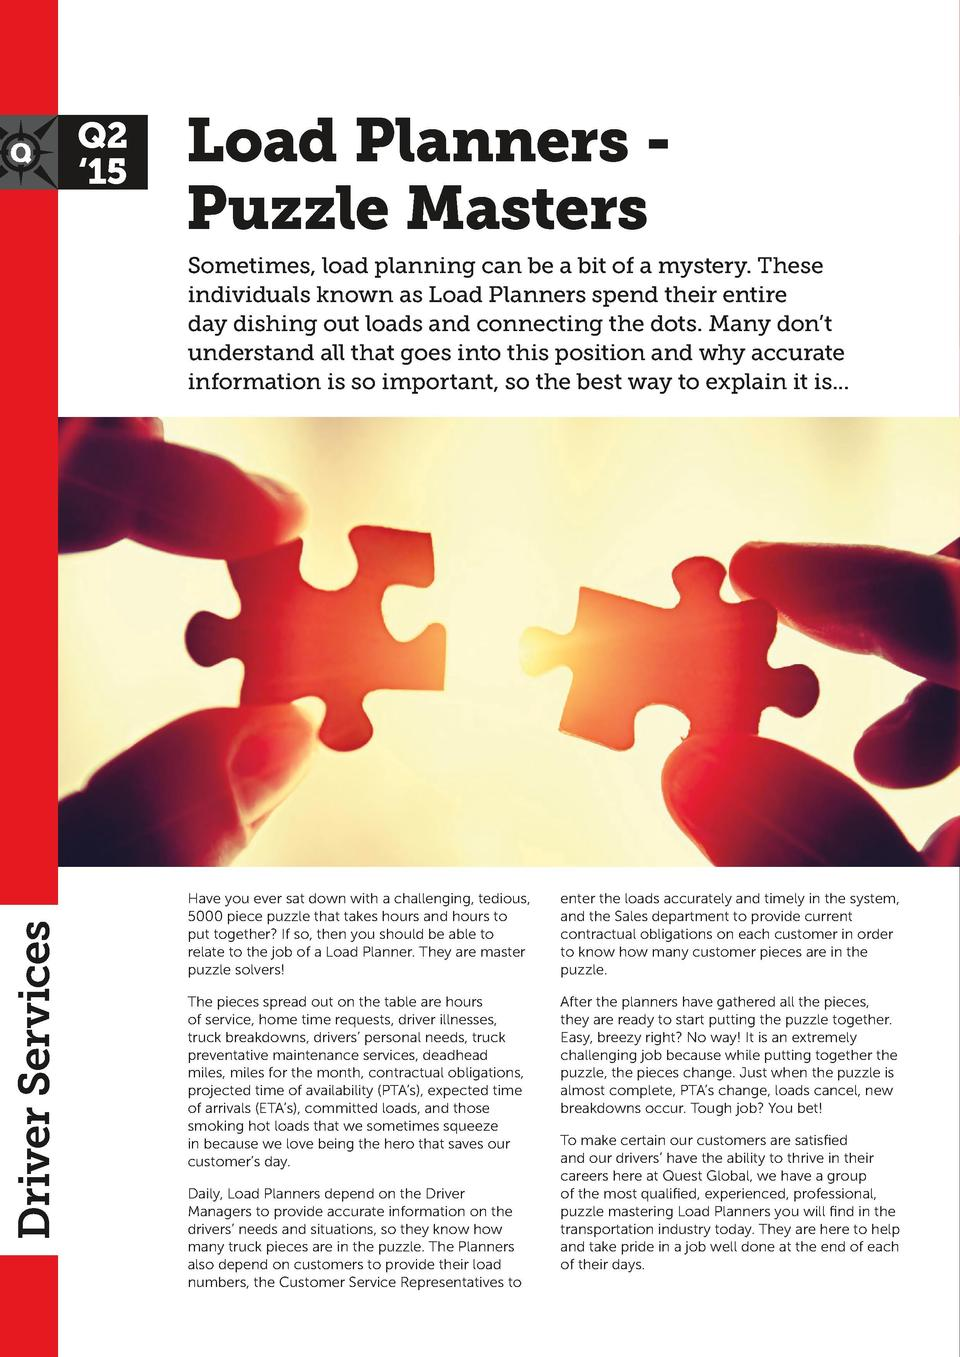 Q2    15  Load Planners Puzzle Masters  Driver Services  Sometimes, load planning can be a bit of a mystery. These individ...